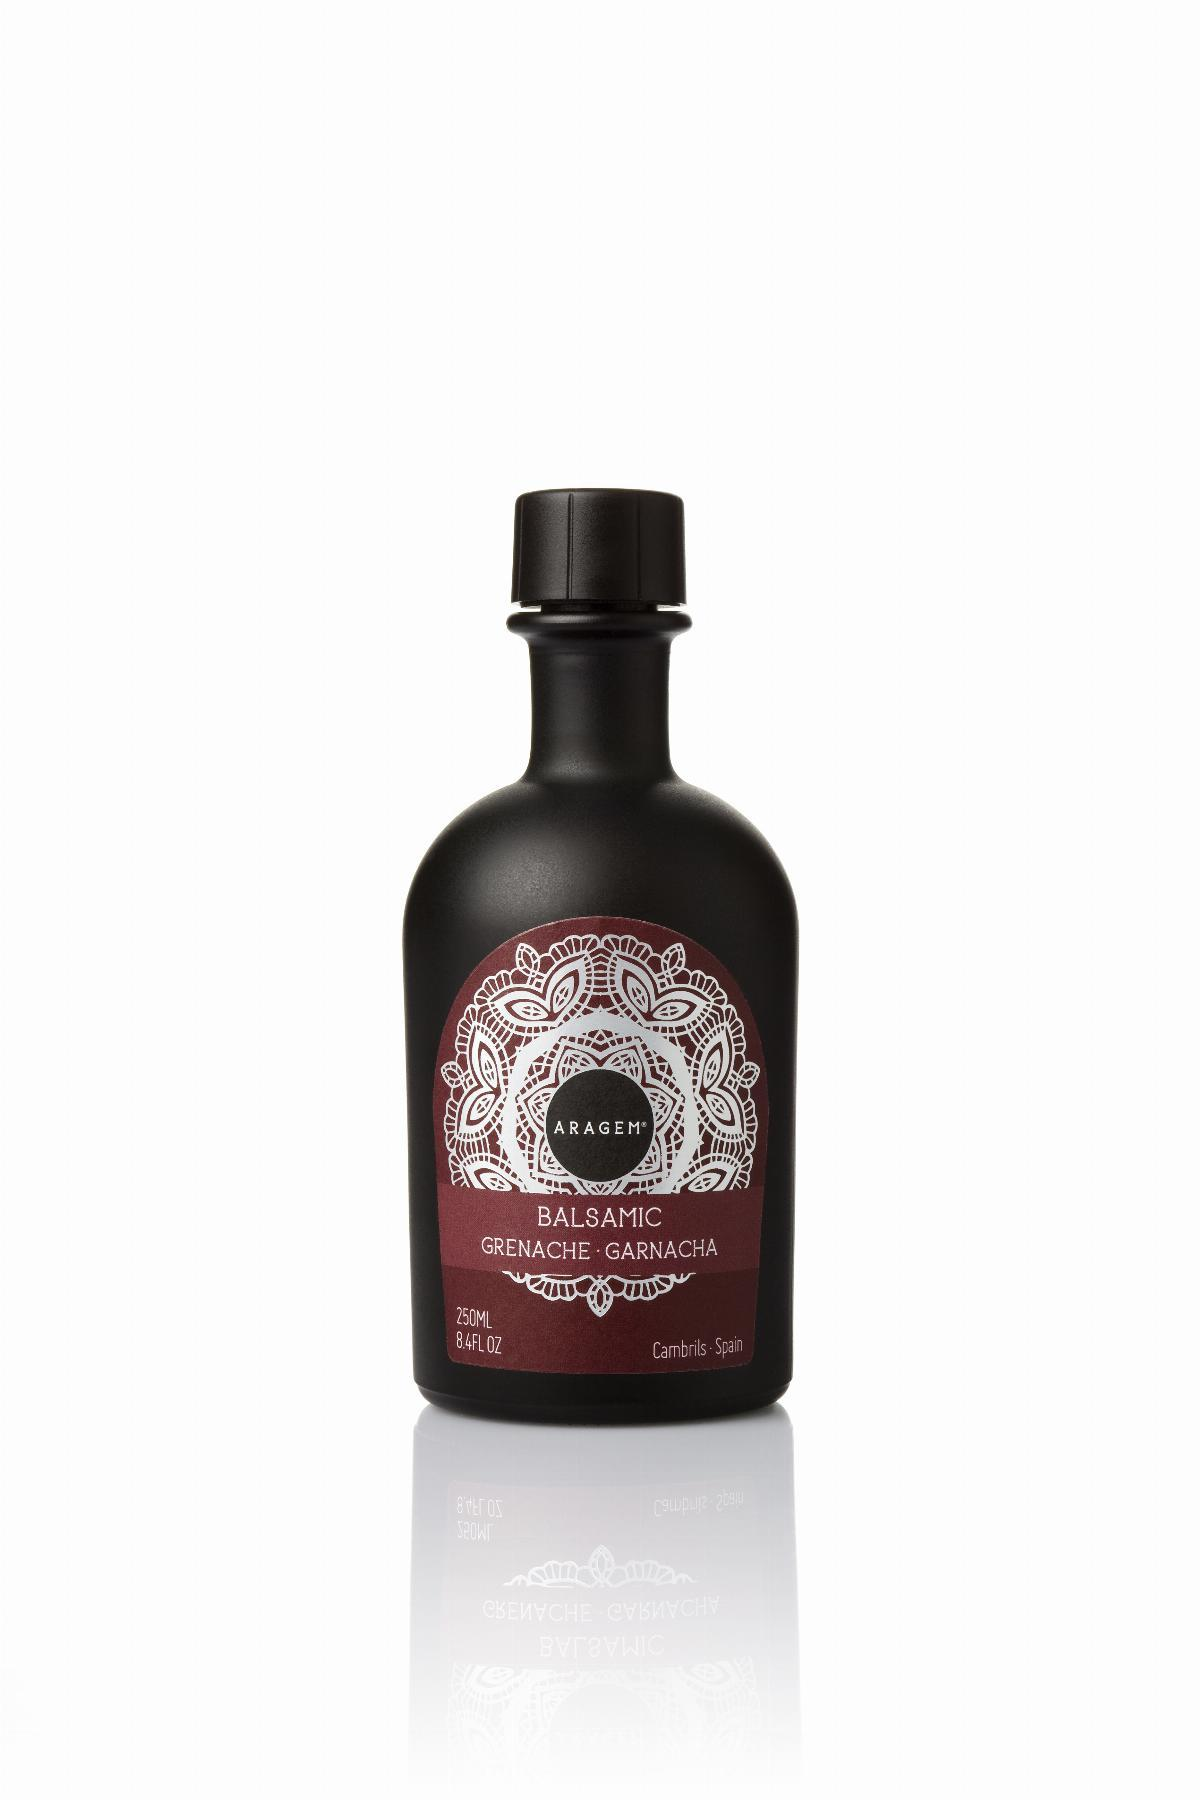 Vinegar - Balsamic Vinegar of Grenache Aragem 250 ml - Mestral Cambrils